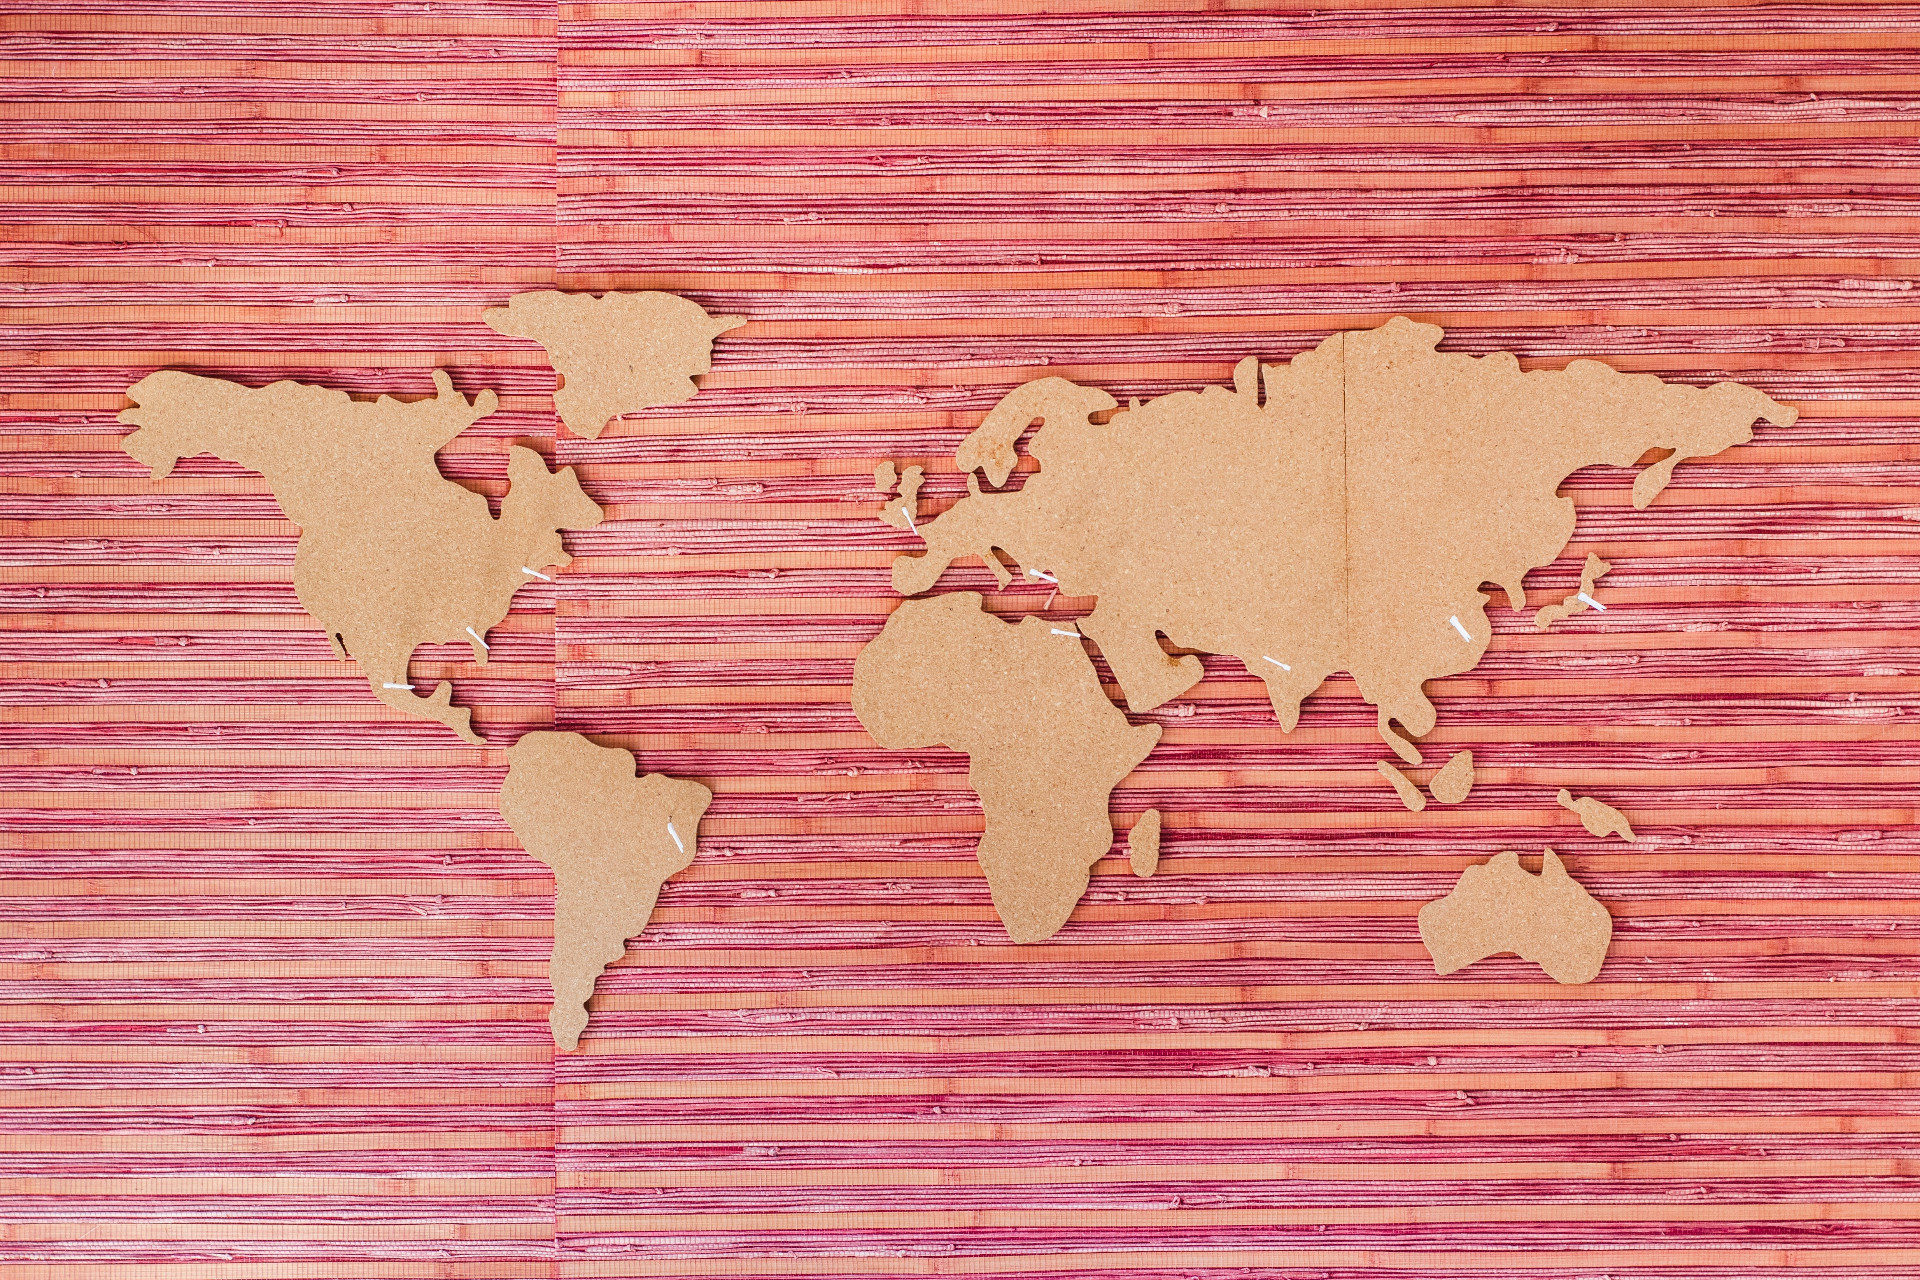 Cut out map of the world on top of a wooden backing